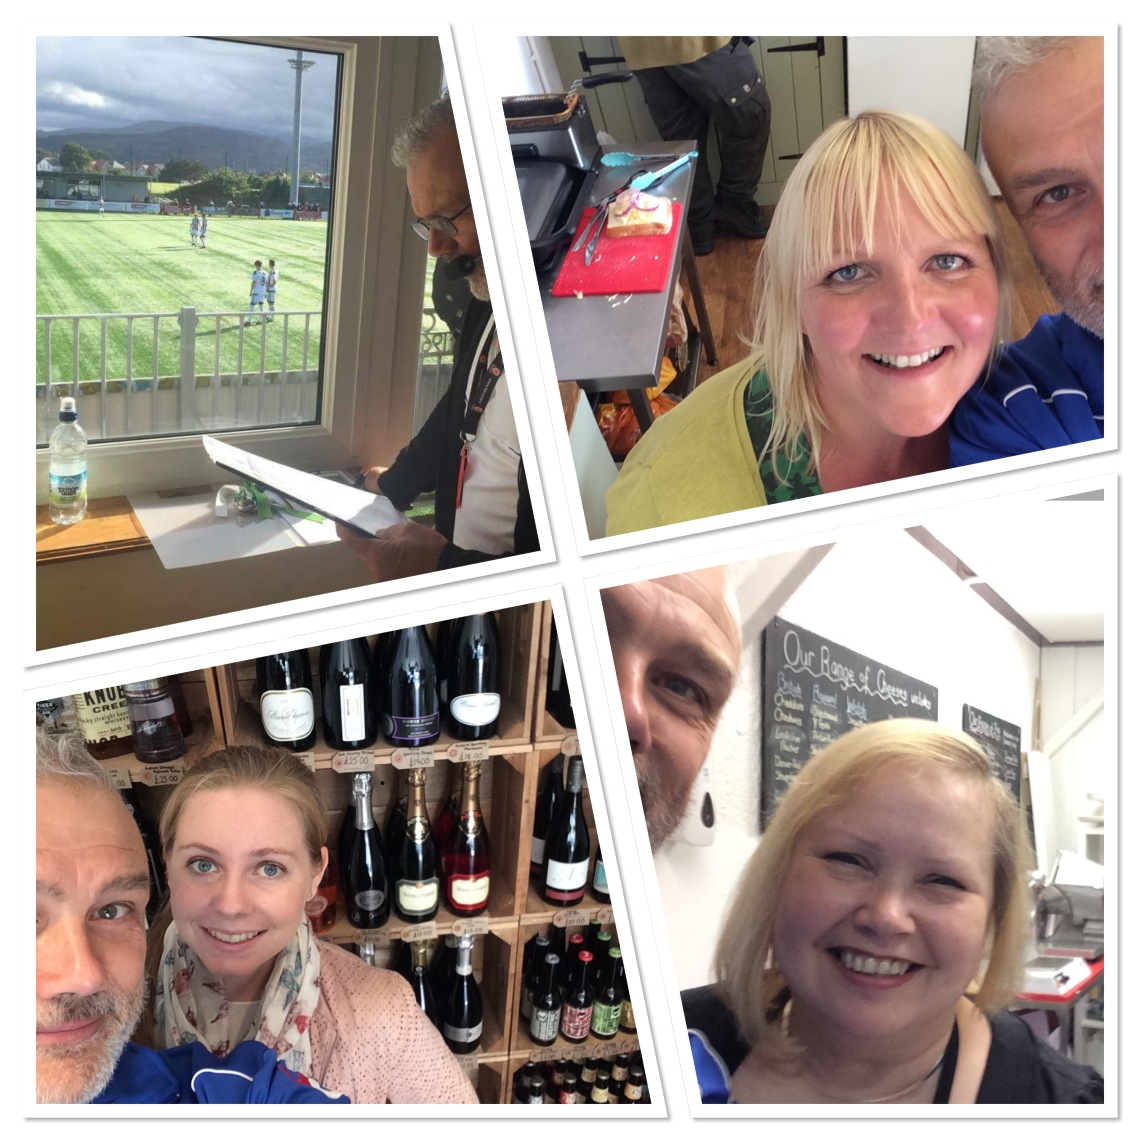 On air at Llandudno and selfies from the TNS Town Tour